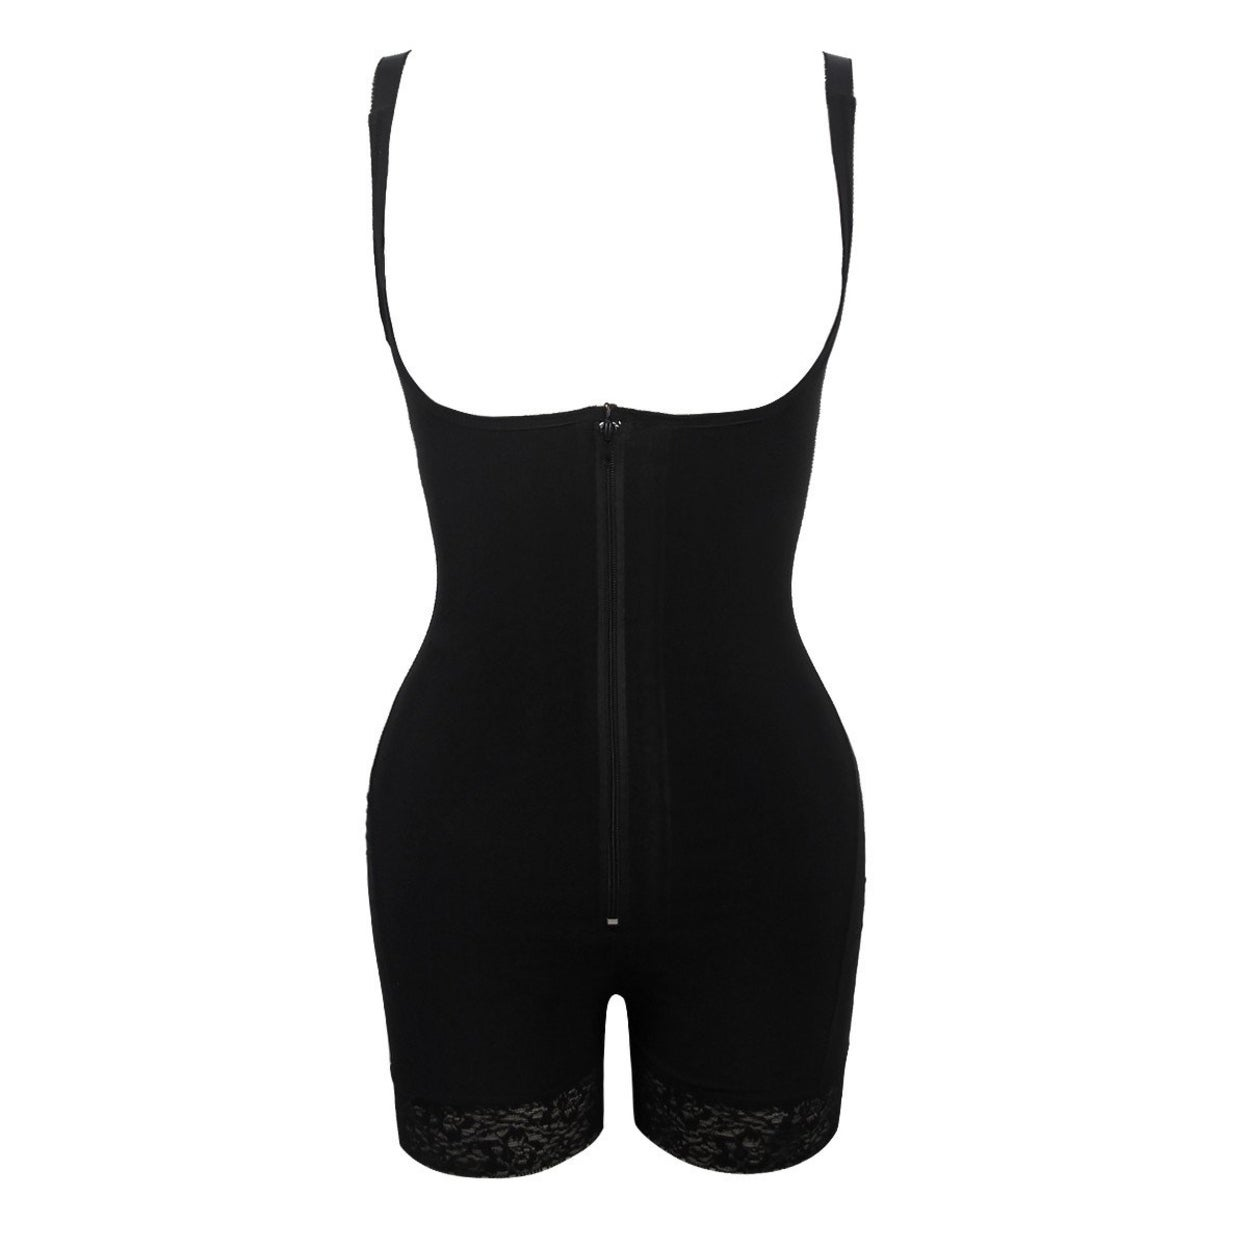 d7ff55261 Shop STYLEDOME Women Sexy Lift Butt Full Body Shaper Underbust Corset  Shoulder Strap Shapewear - On Sale - Free Shipping On Orders Over  45 -  Overstock - ...